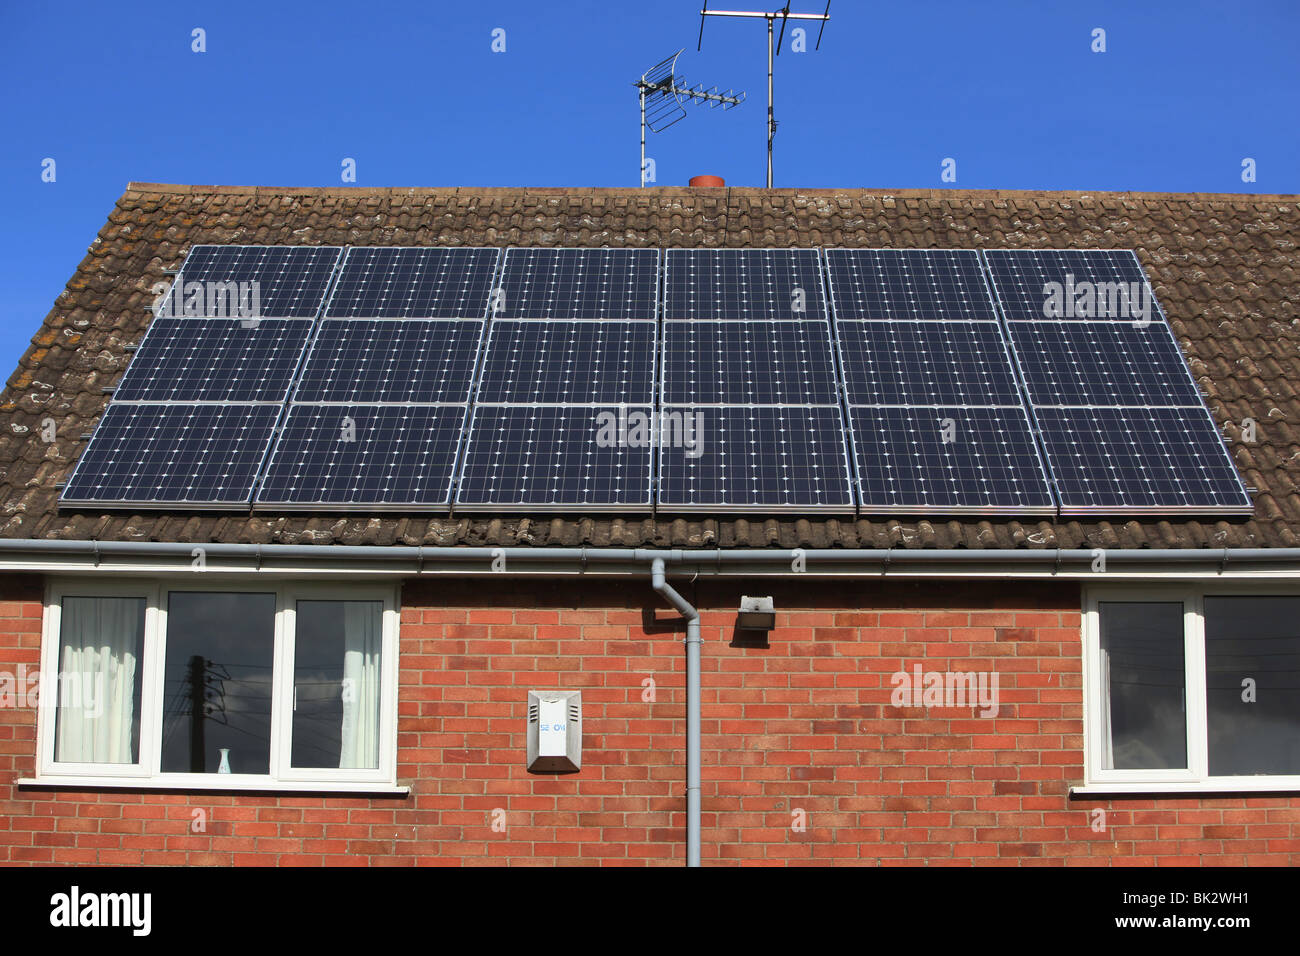 A UK residential house with new solar panel heating on its roof on a sunny clear blue sky day - Stock Image